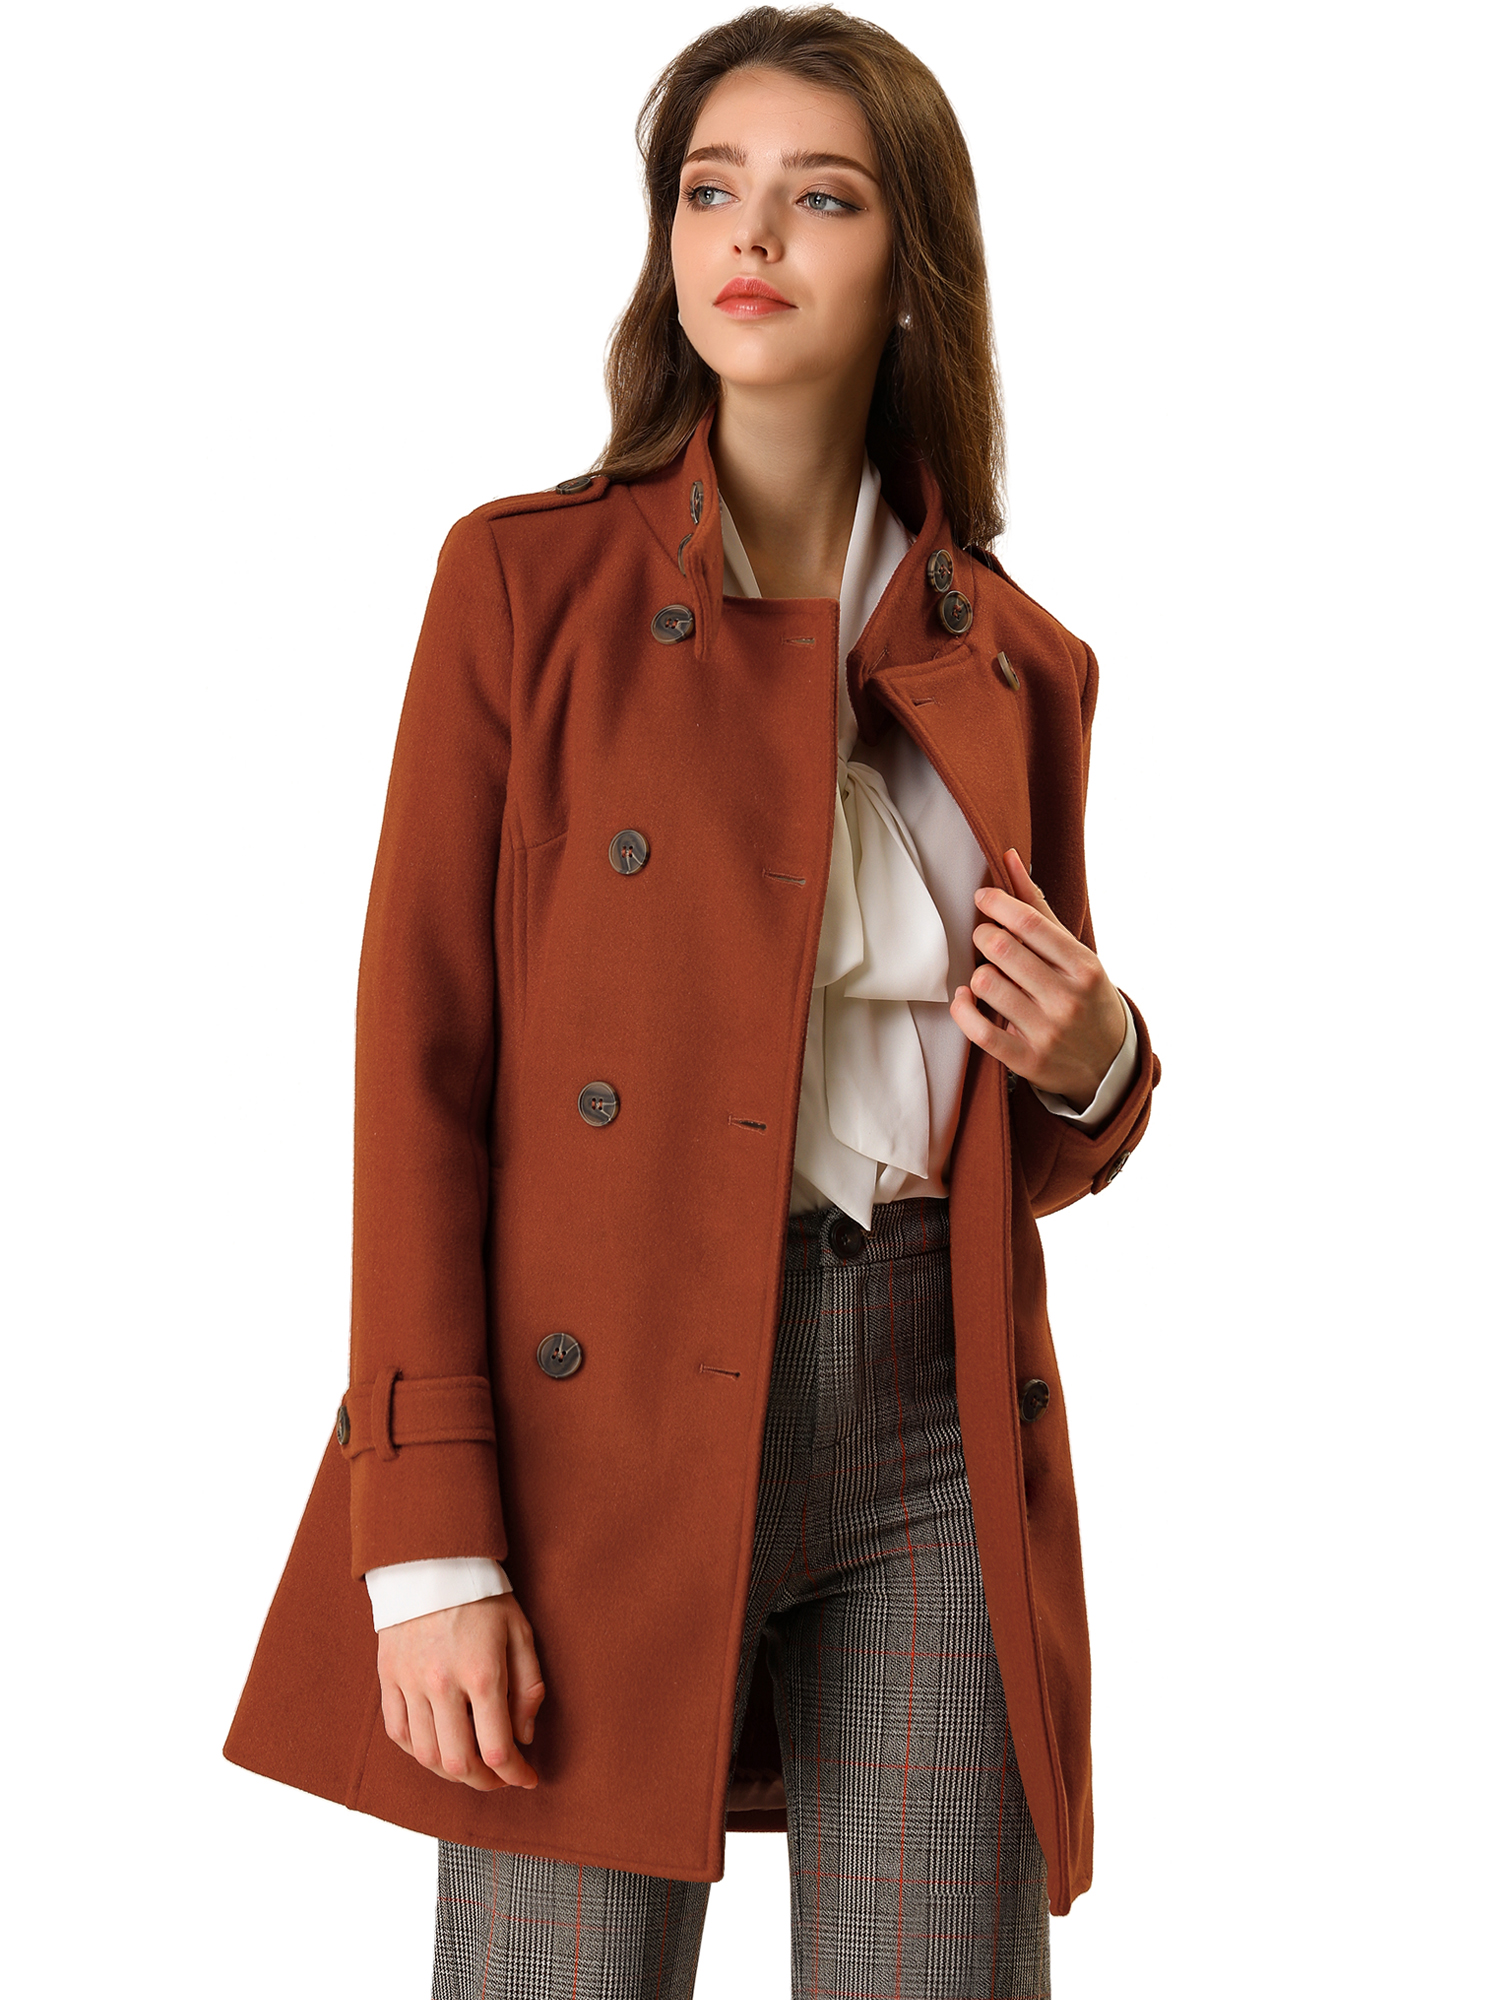 Women's Winter Stand Collar Double Breasted Outwear Trench Coat Brown XL